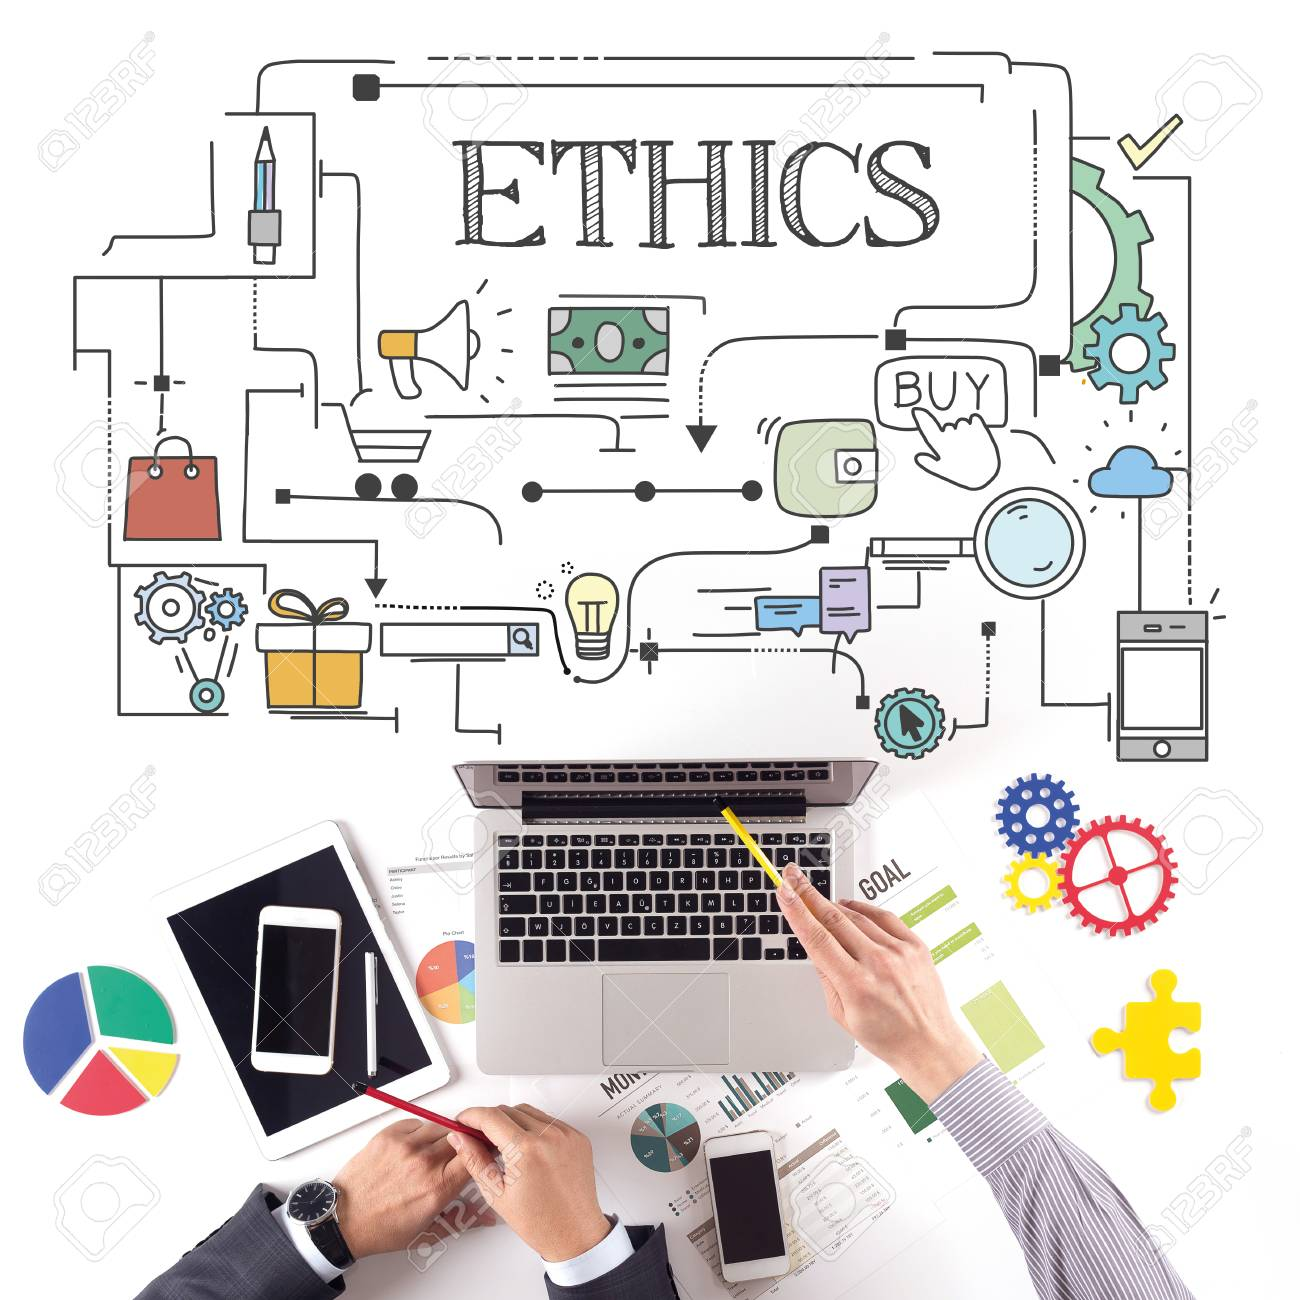 61519572-people-working-workplace-technology-teamwork-ethics-concept.jpg